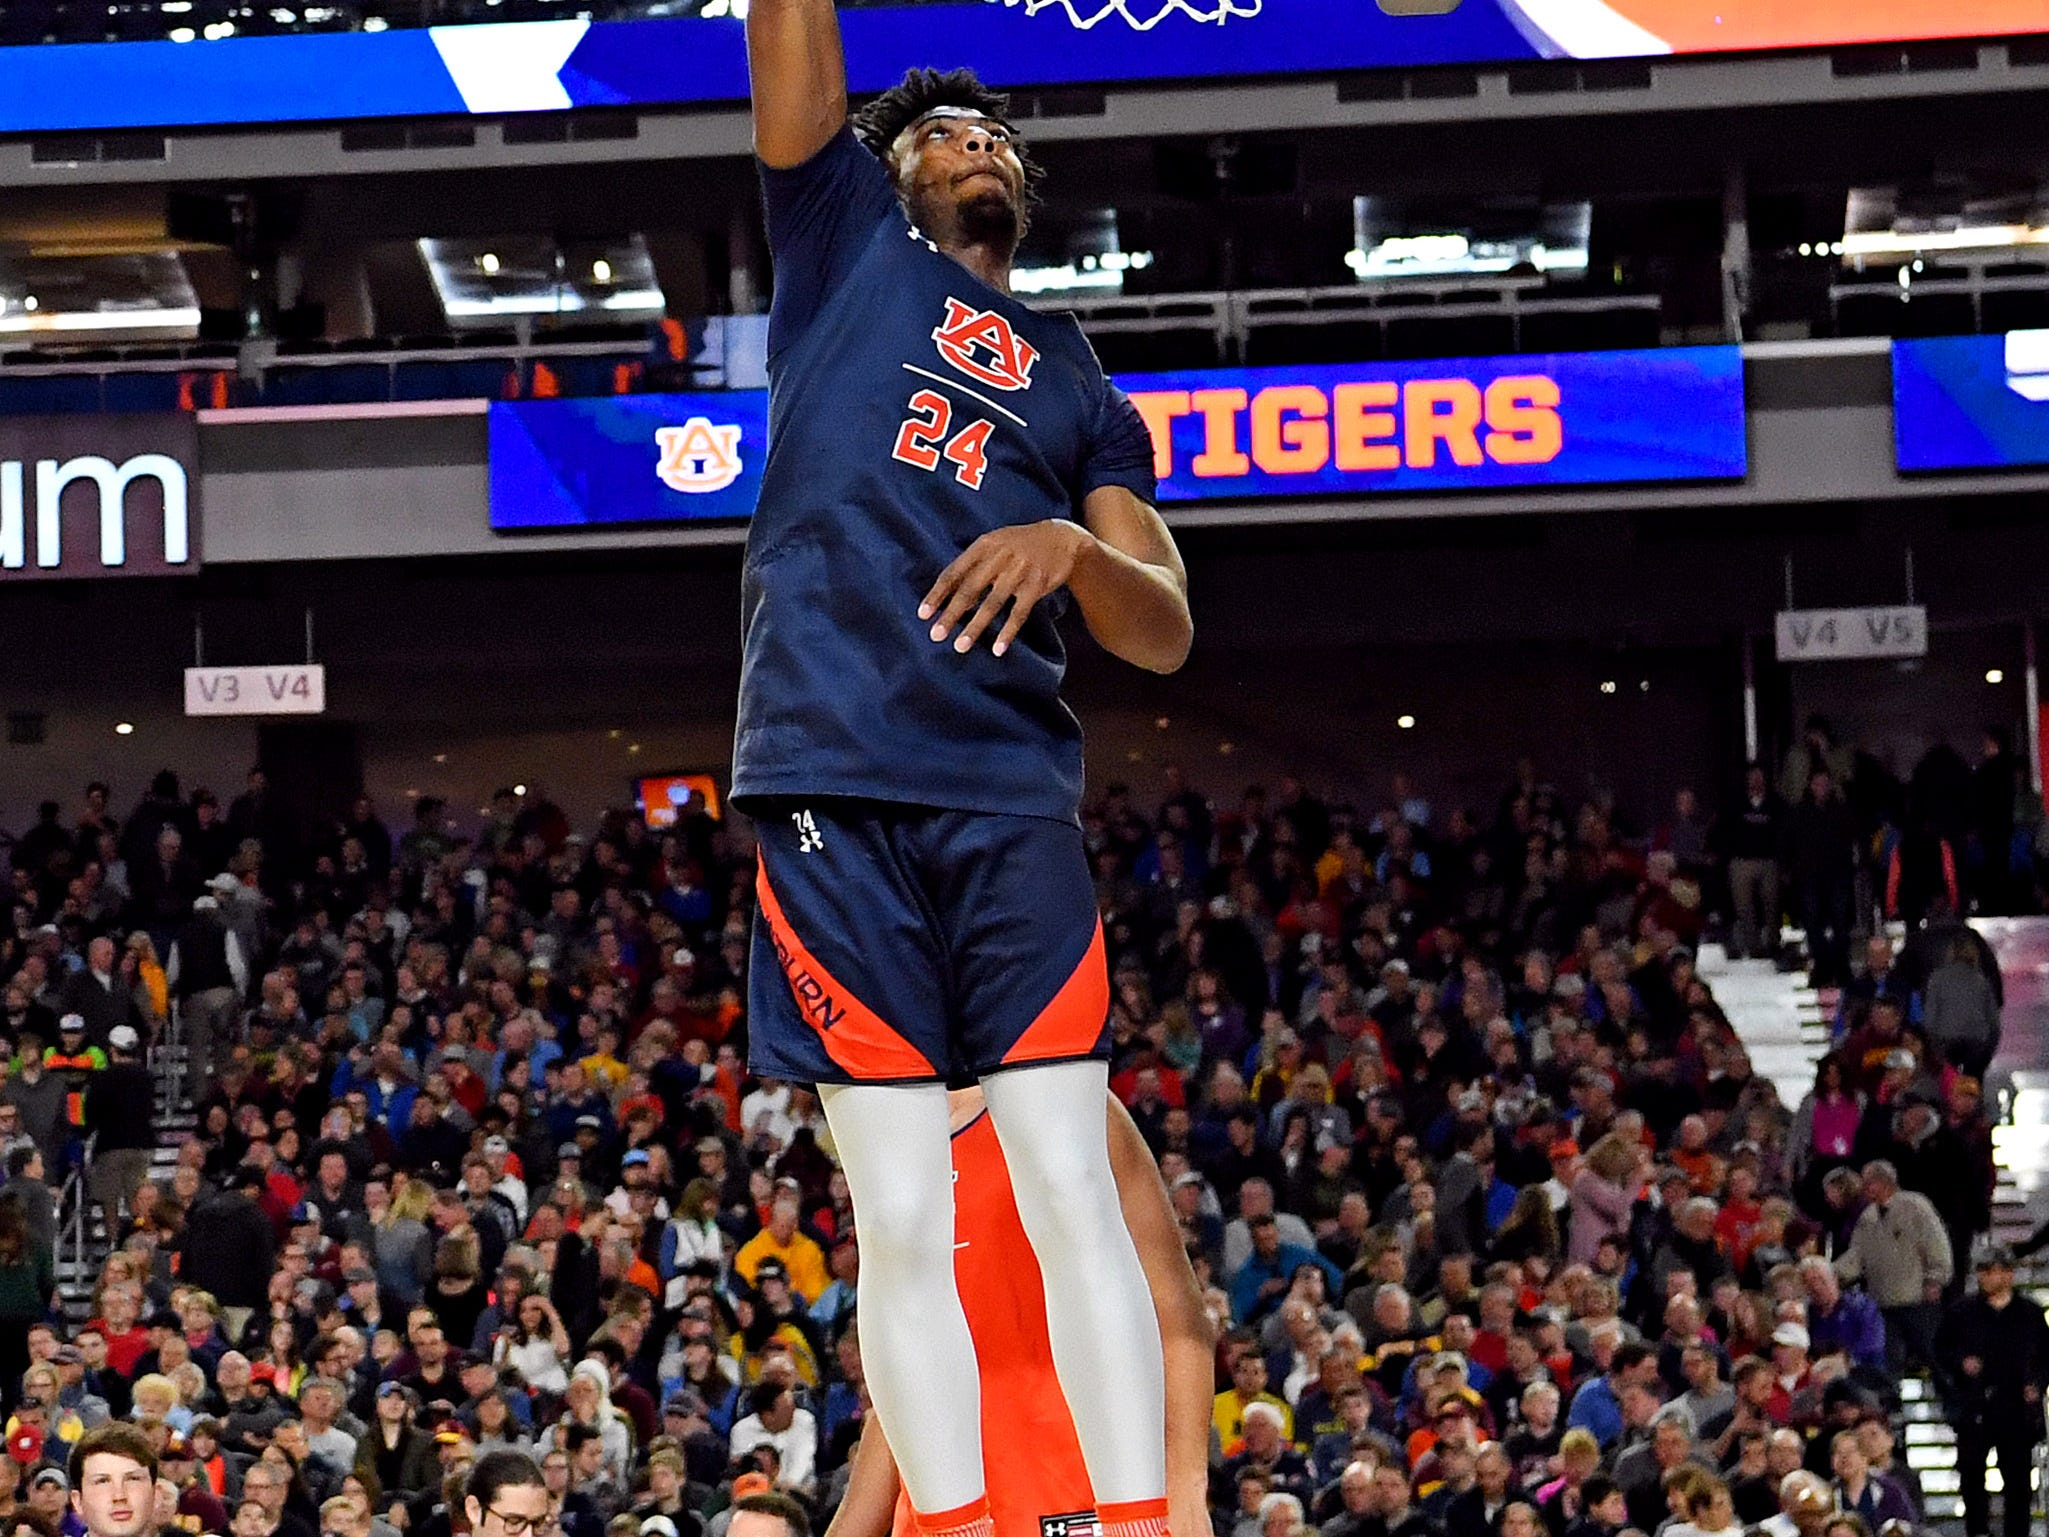 Apr 5, 2019; Minneapolis, MN, USA; Auburn Tigers forward Anfernee McLemore (24) dunks the ball during practice for the 2019 men's Final Four at US Bank Stadium. Mandatory Credit: Bob Donnan-USA TODAY Sports